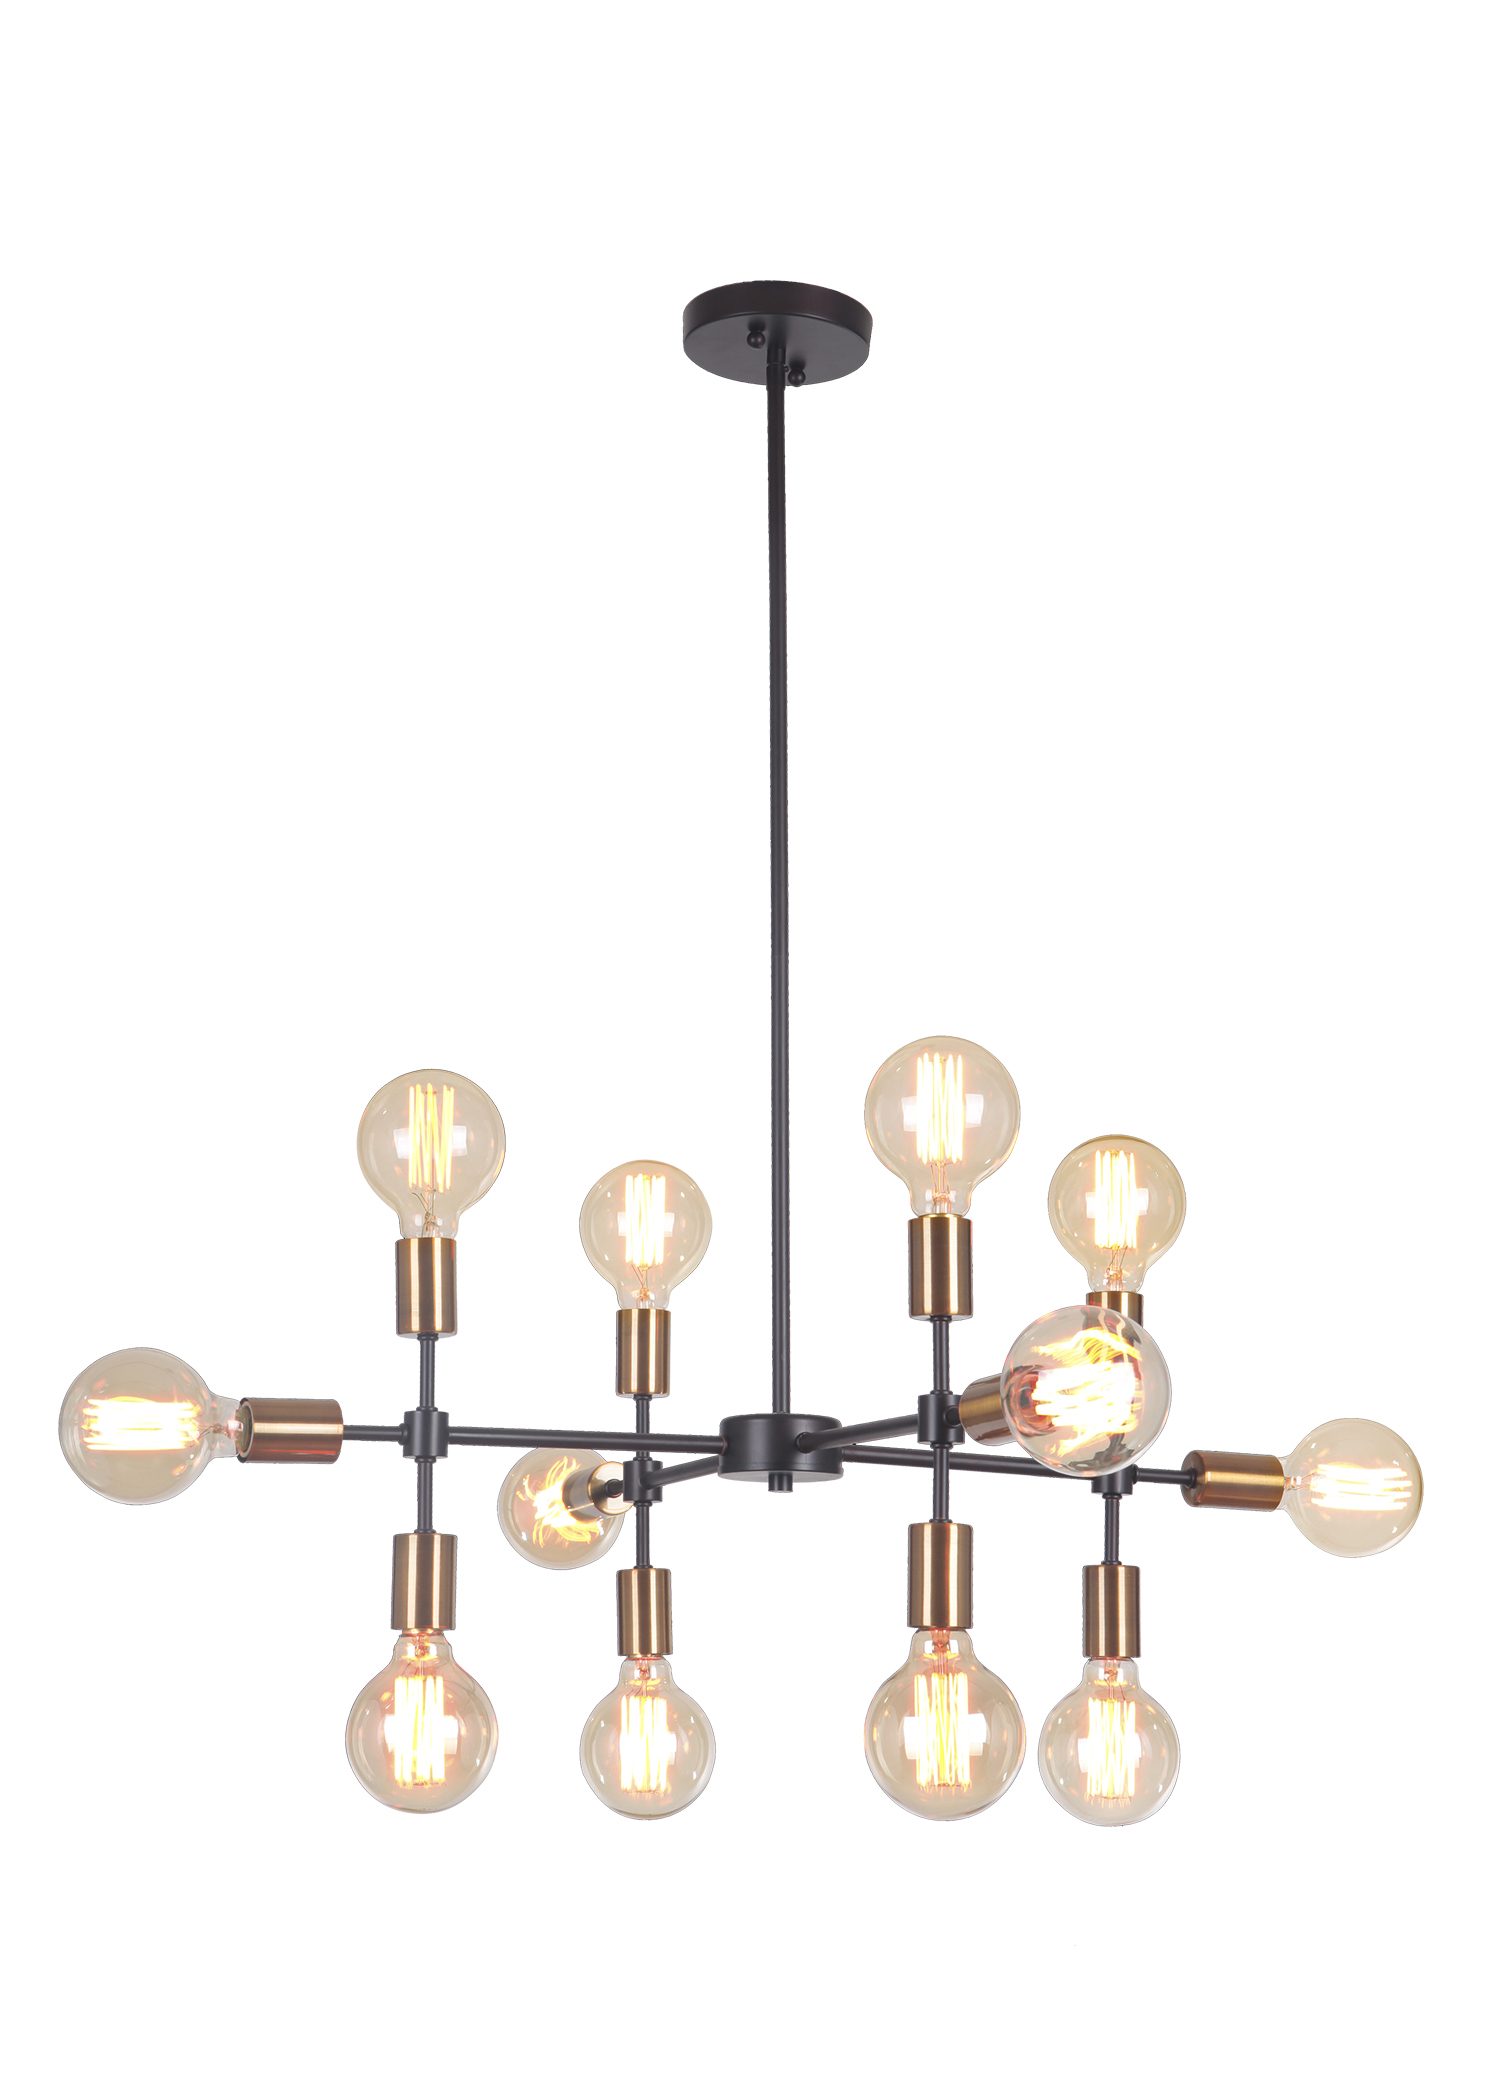 mariana-home-801274-light-on-lighting-chandelier-modern-glam-indoor-lights  sc 1 st  Lighting & mariana-home-801274-light-on-lighting-chandelier-modern-glam-indoor ...